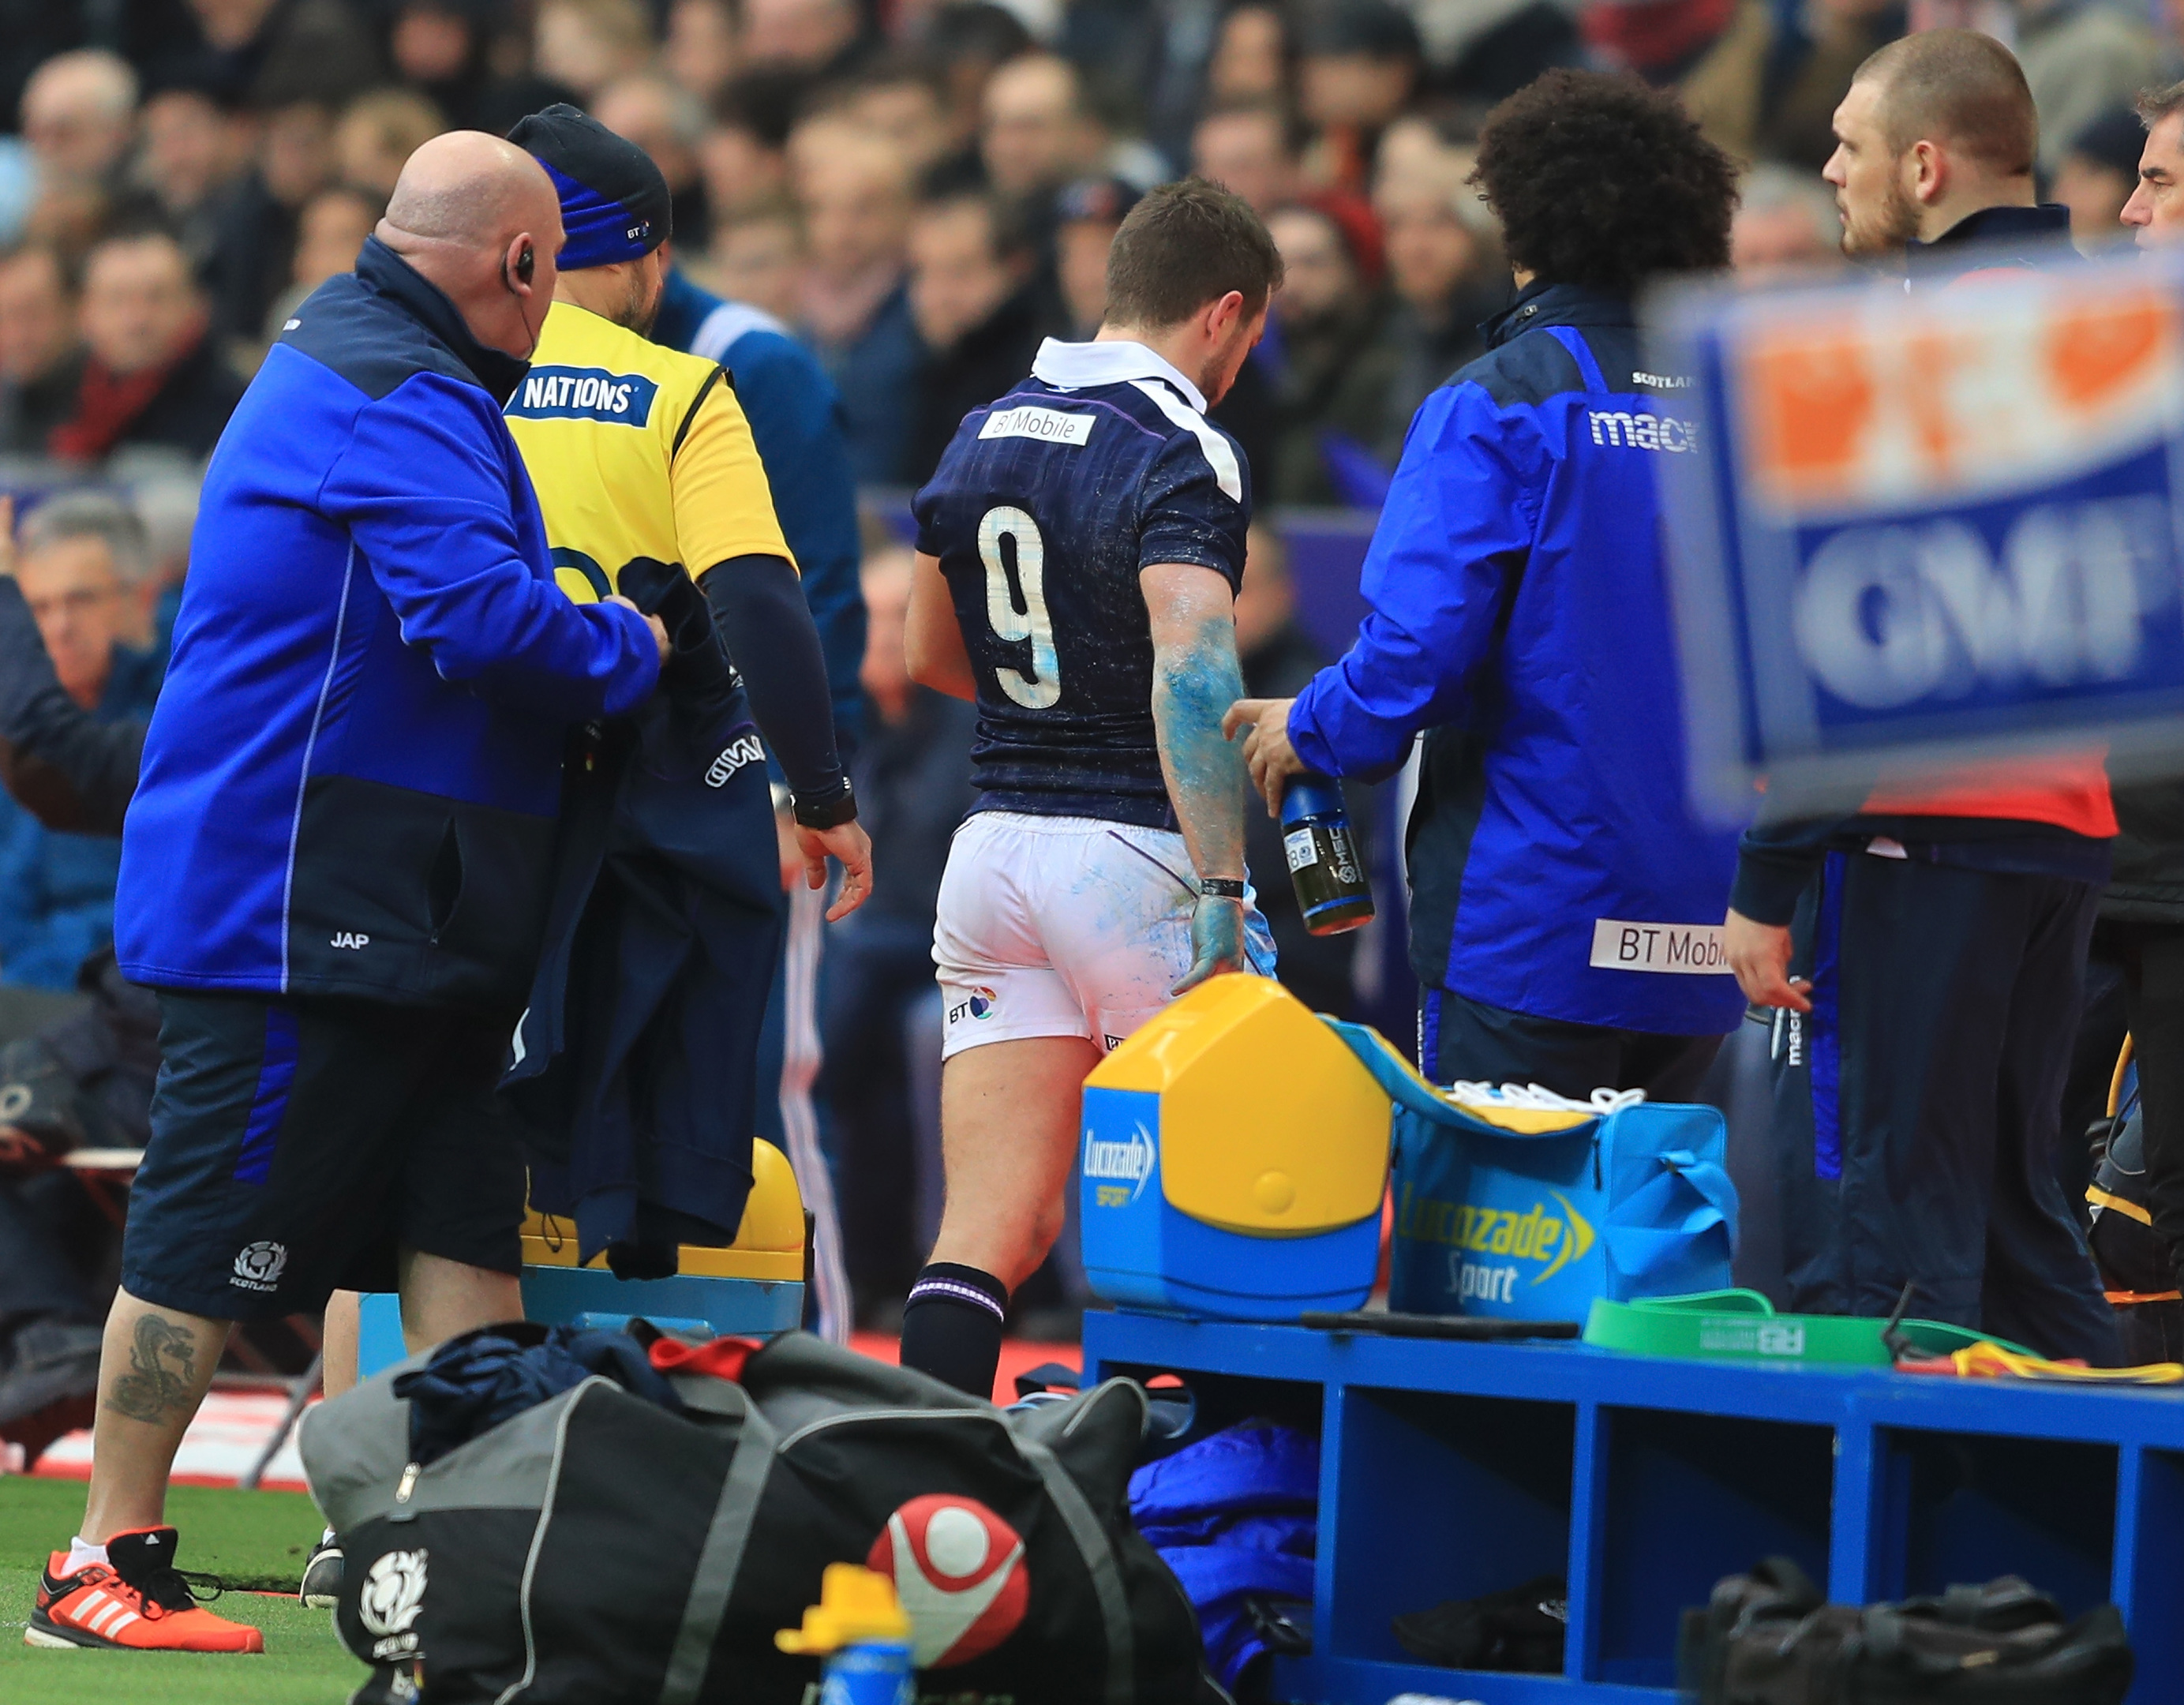 Laidlaw leaves the pitch in Paris after suffering his ankle injury.